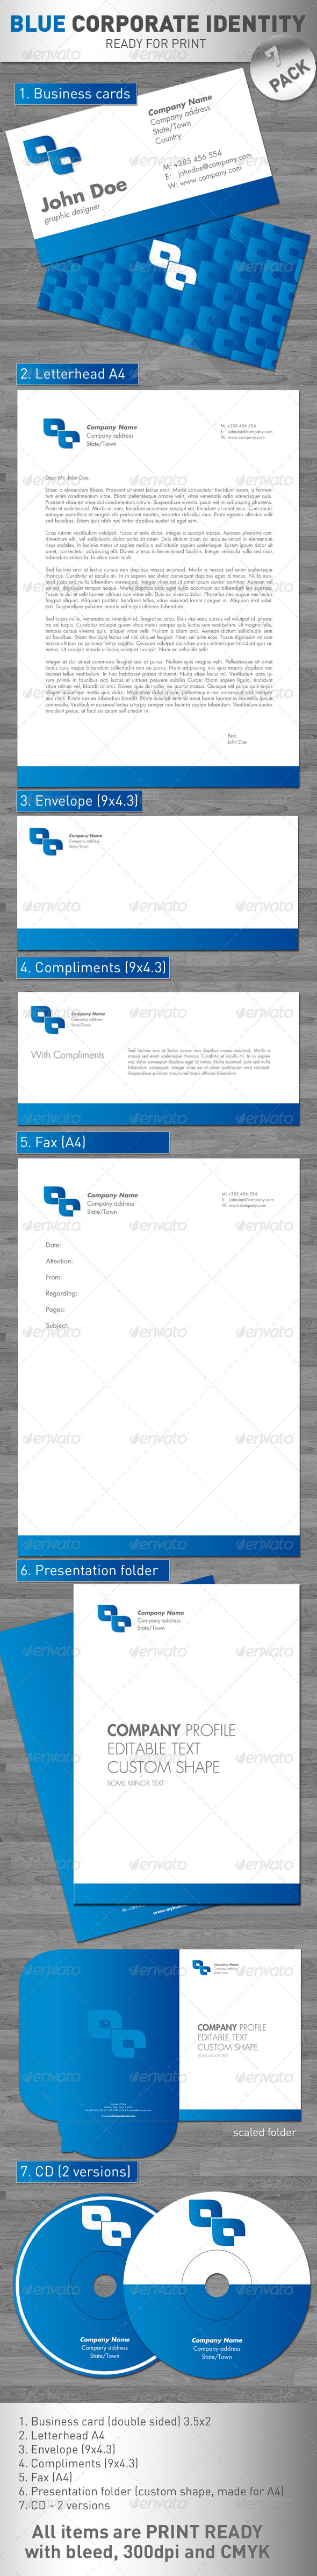 Blue Corporate Identity - Stationery Print Templates